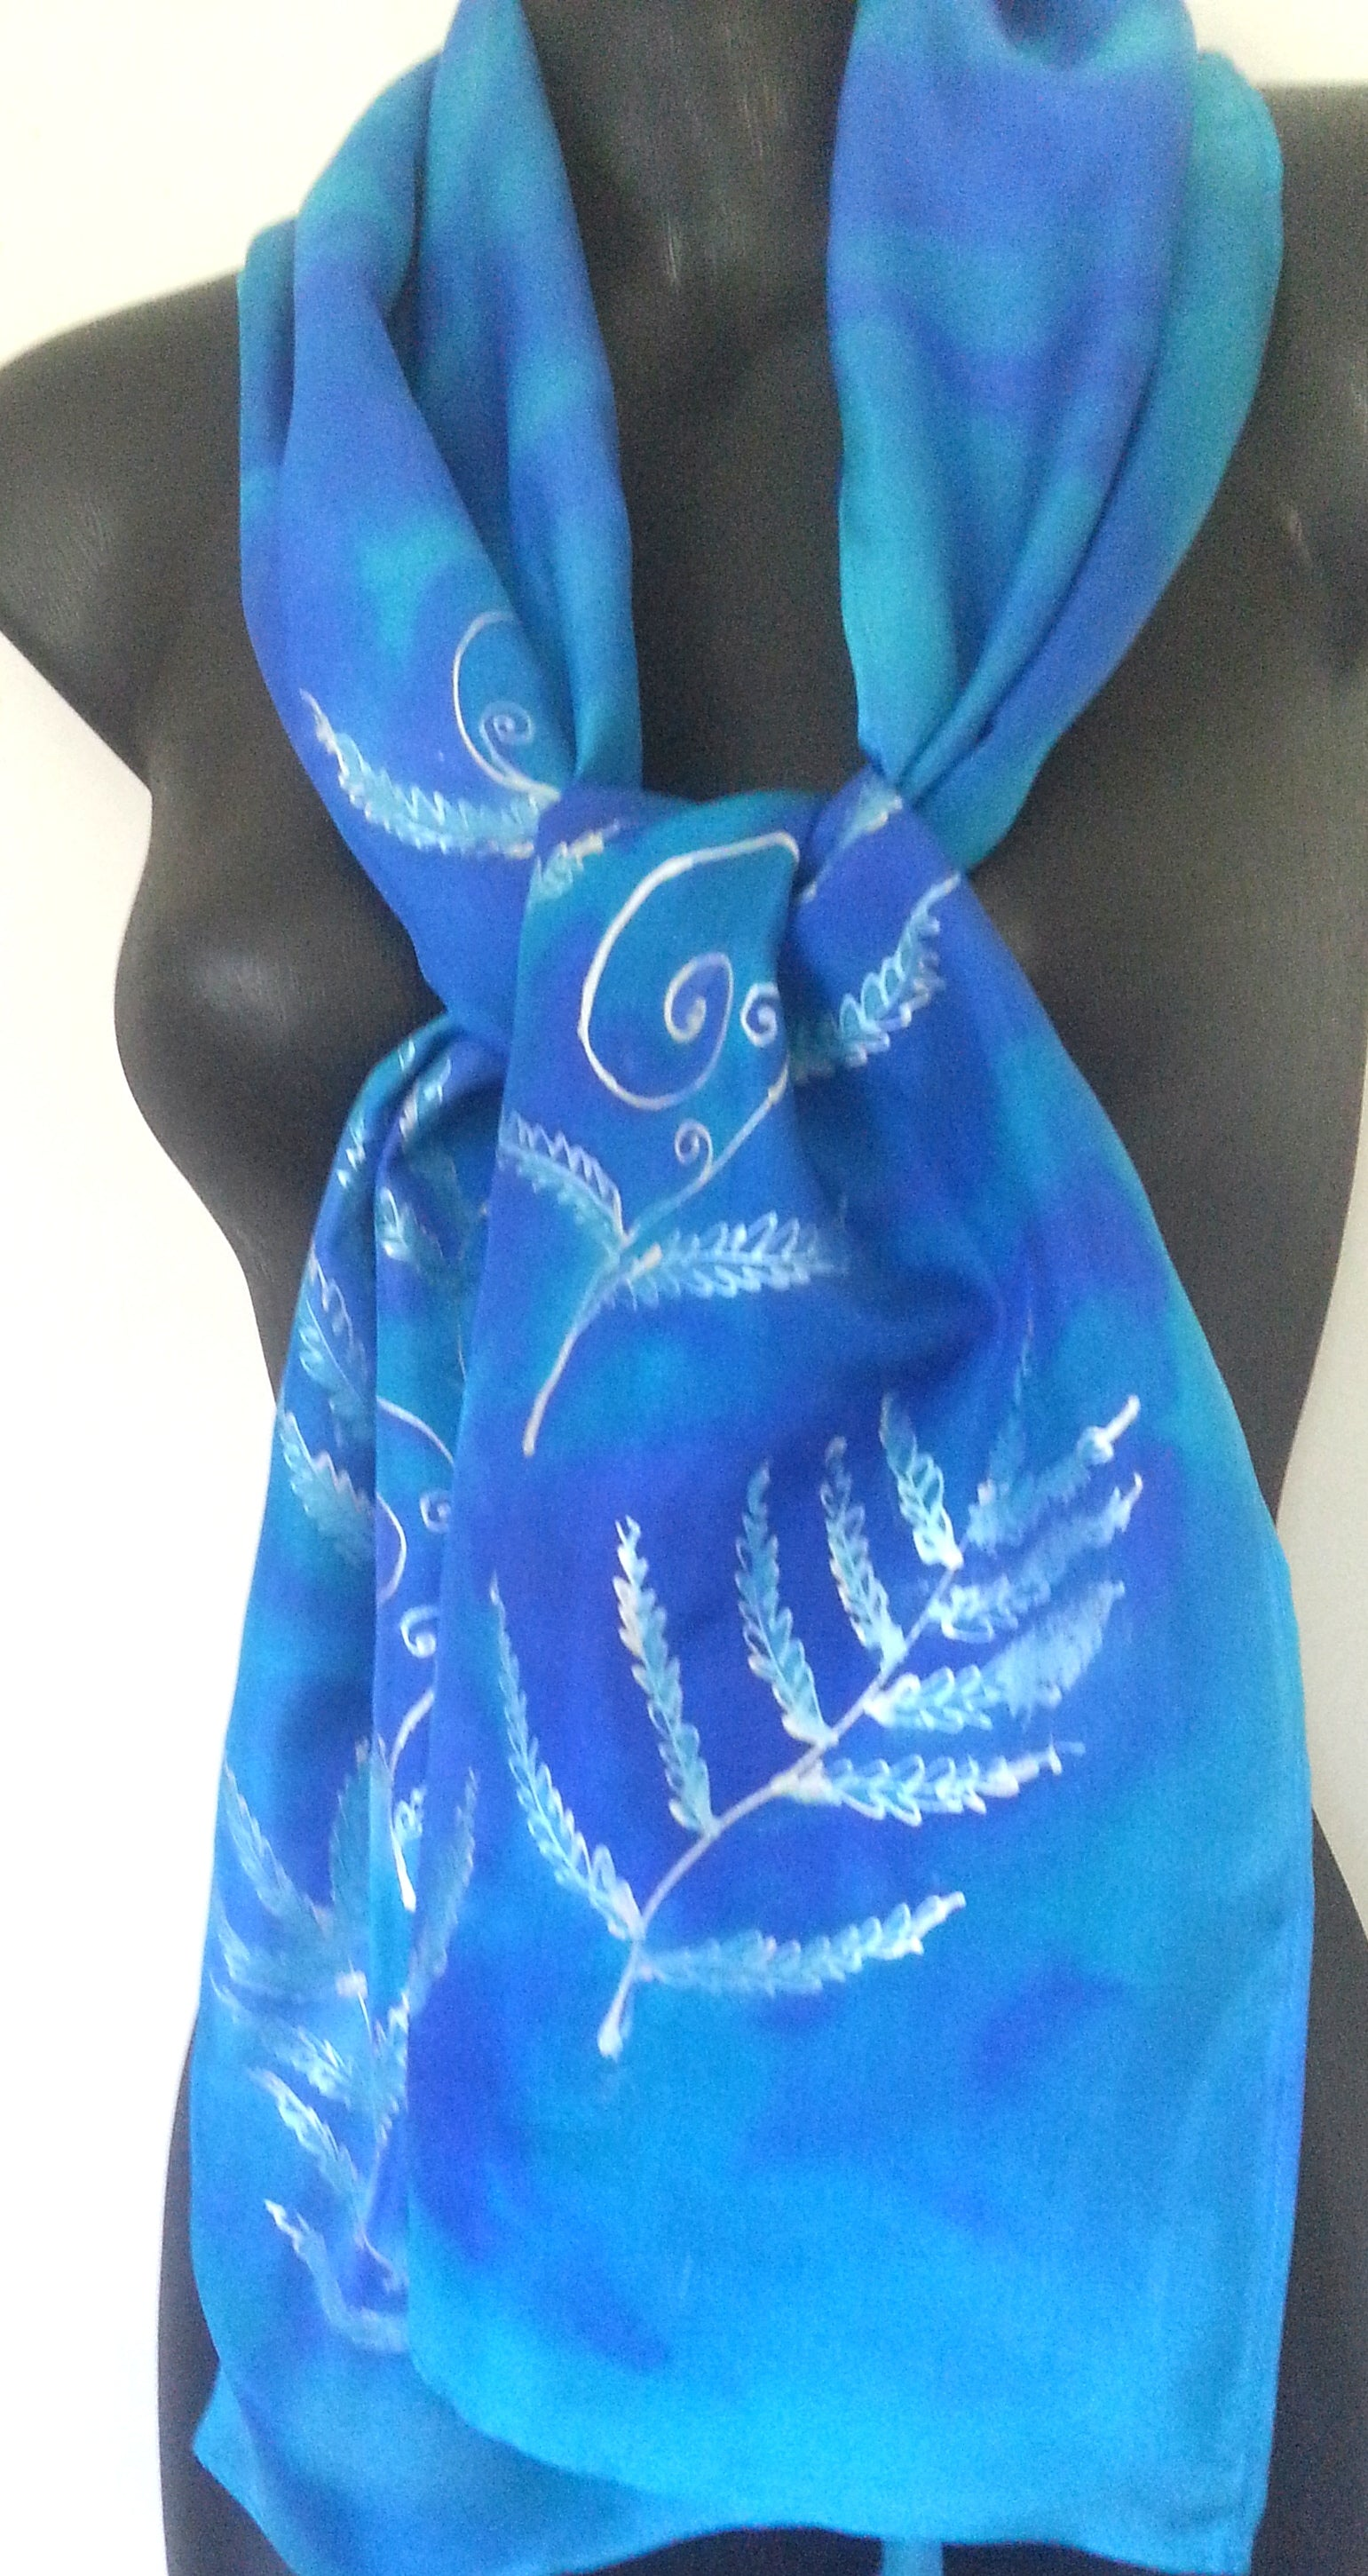 Silver Ferns with Korus -  Hand painted Silk Scarf - Satherley Silks NZ